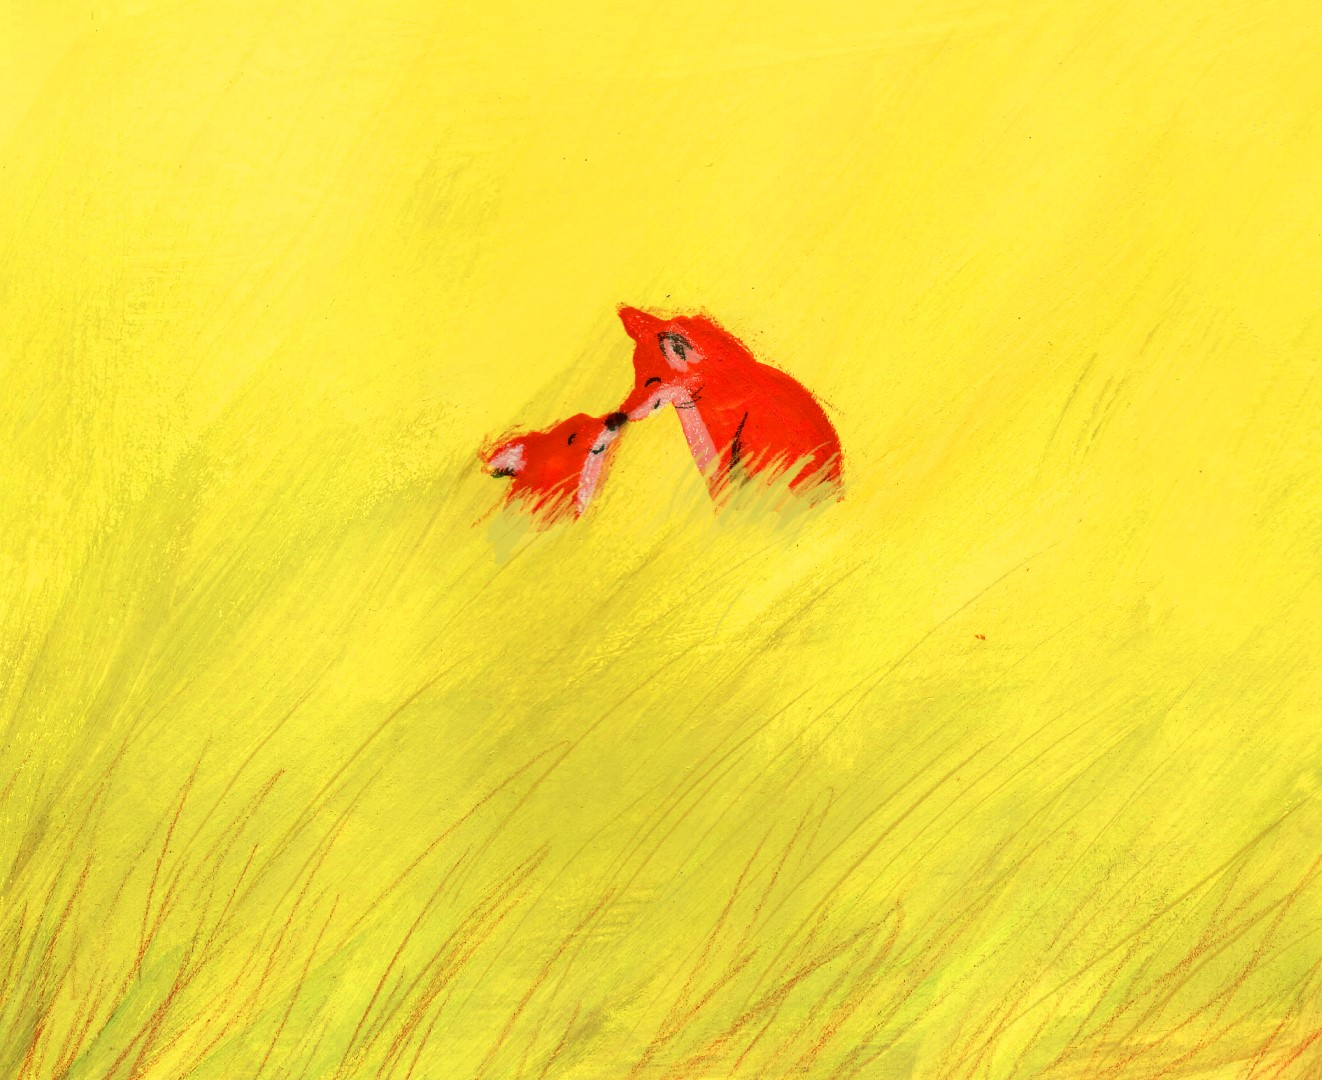 foxes in field